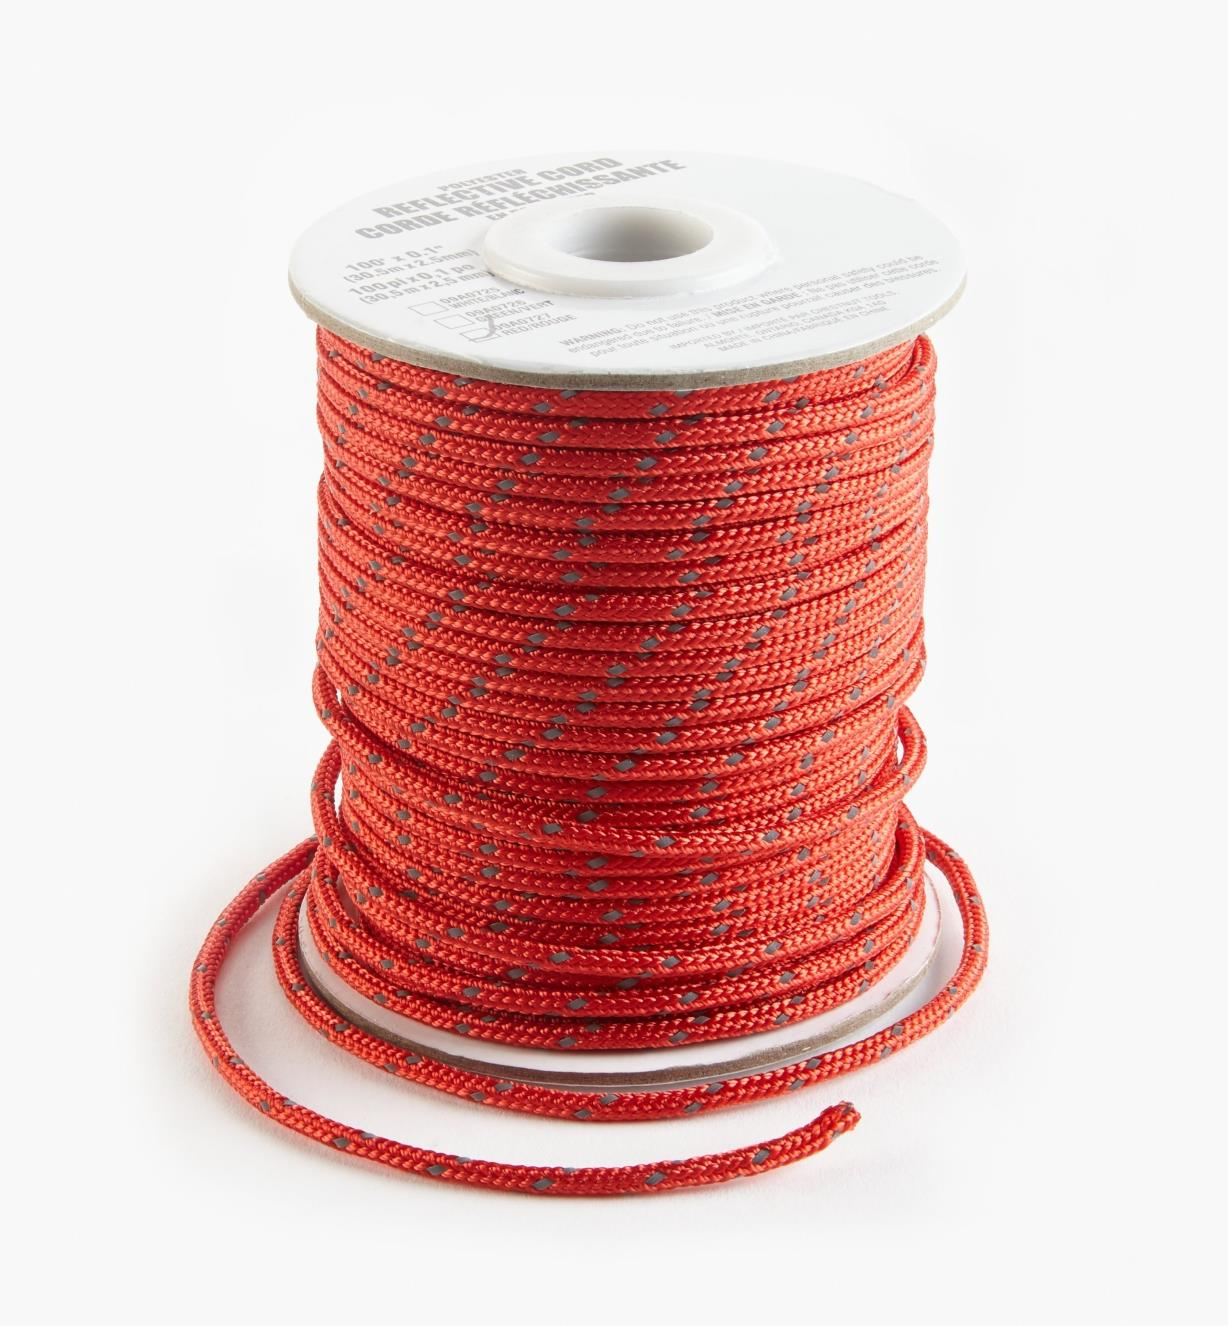 09A0727 - 100' Reflective Cord, Red